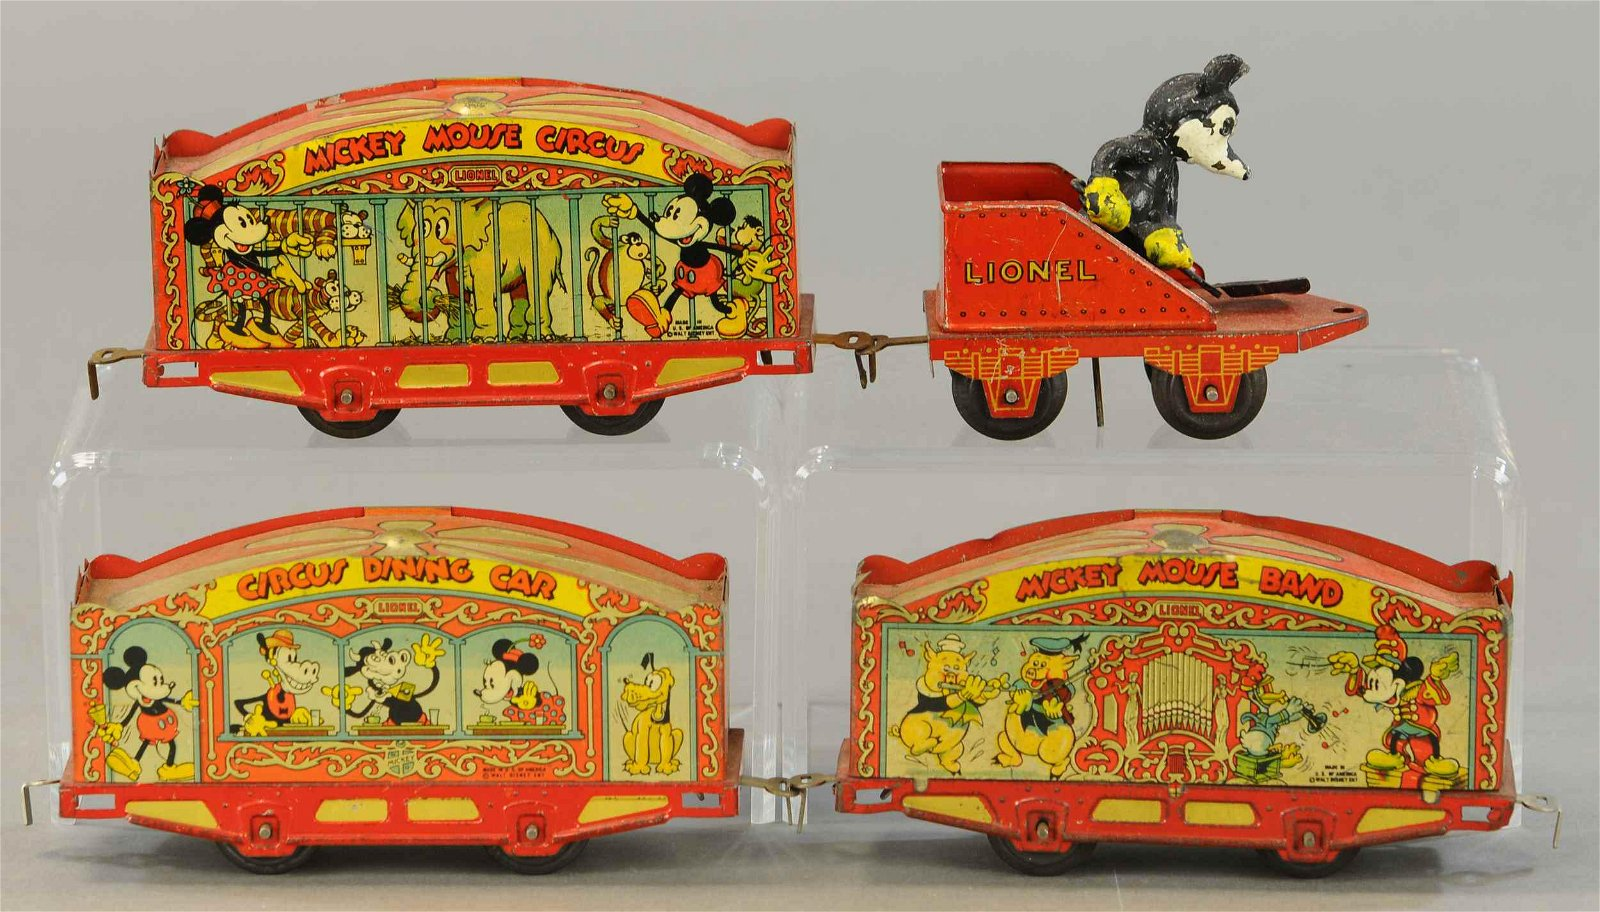 LIONEL MICKEY MOUSE TRAIN CARS